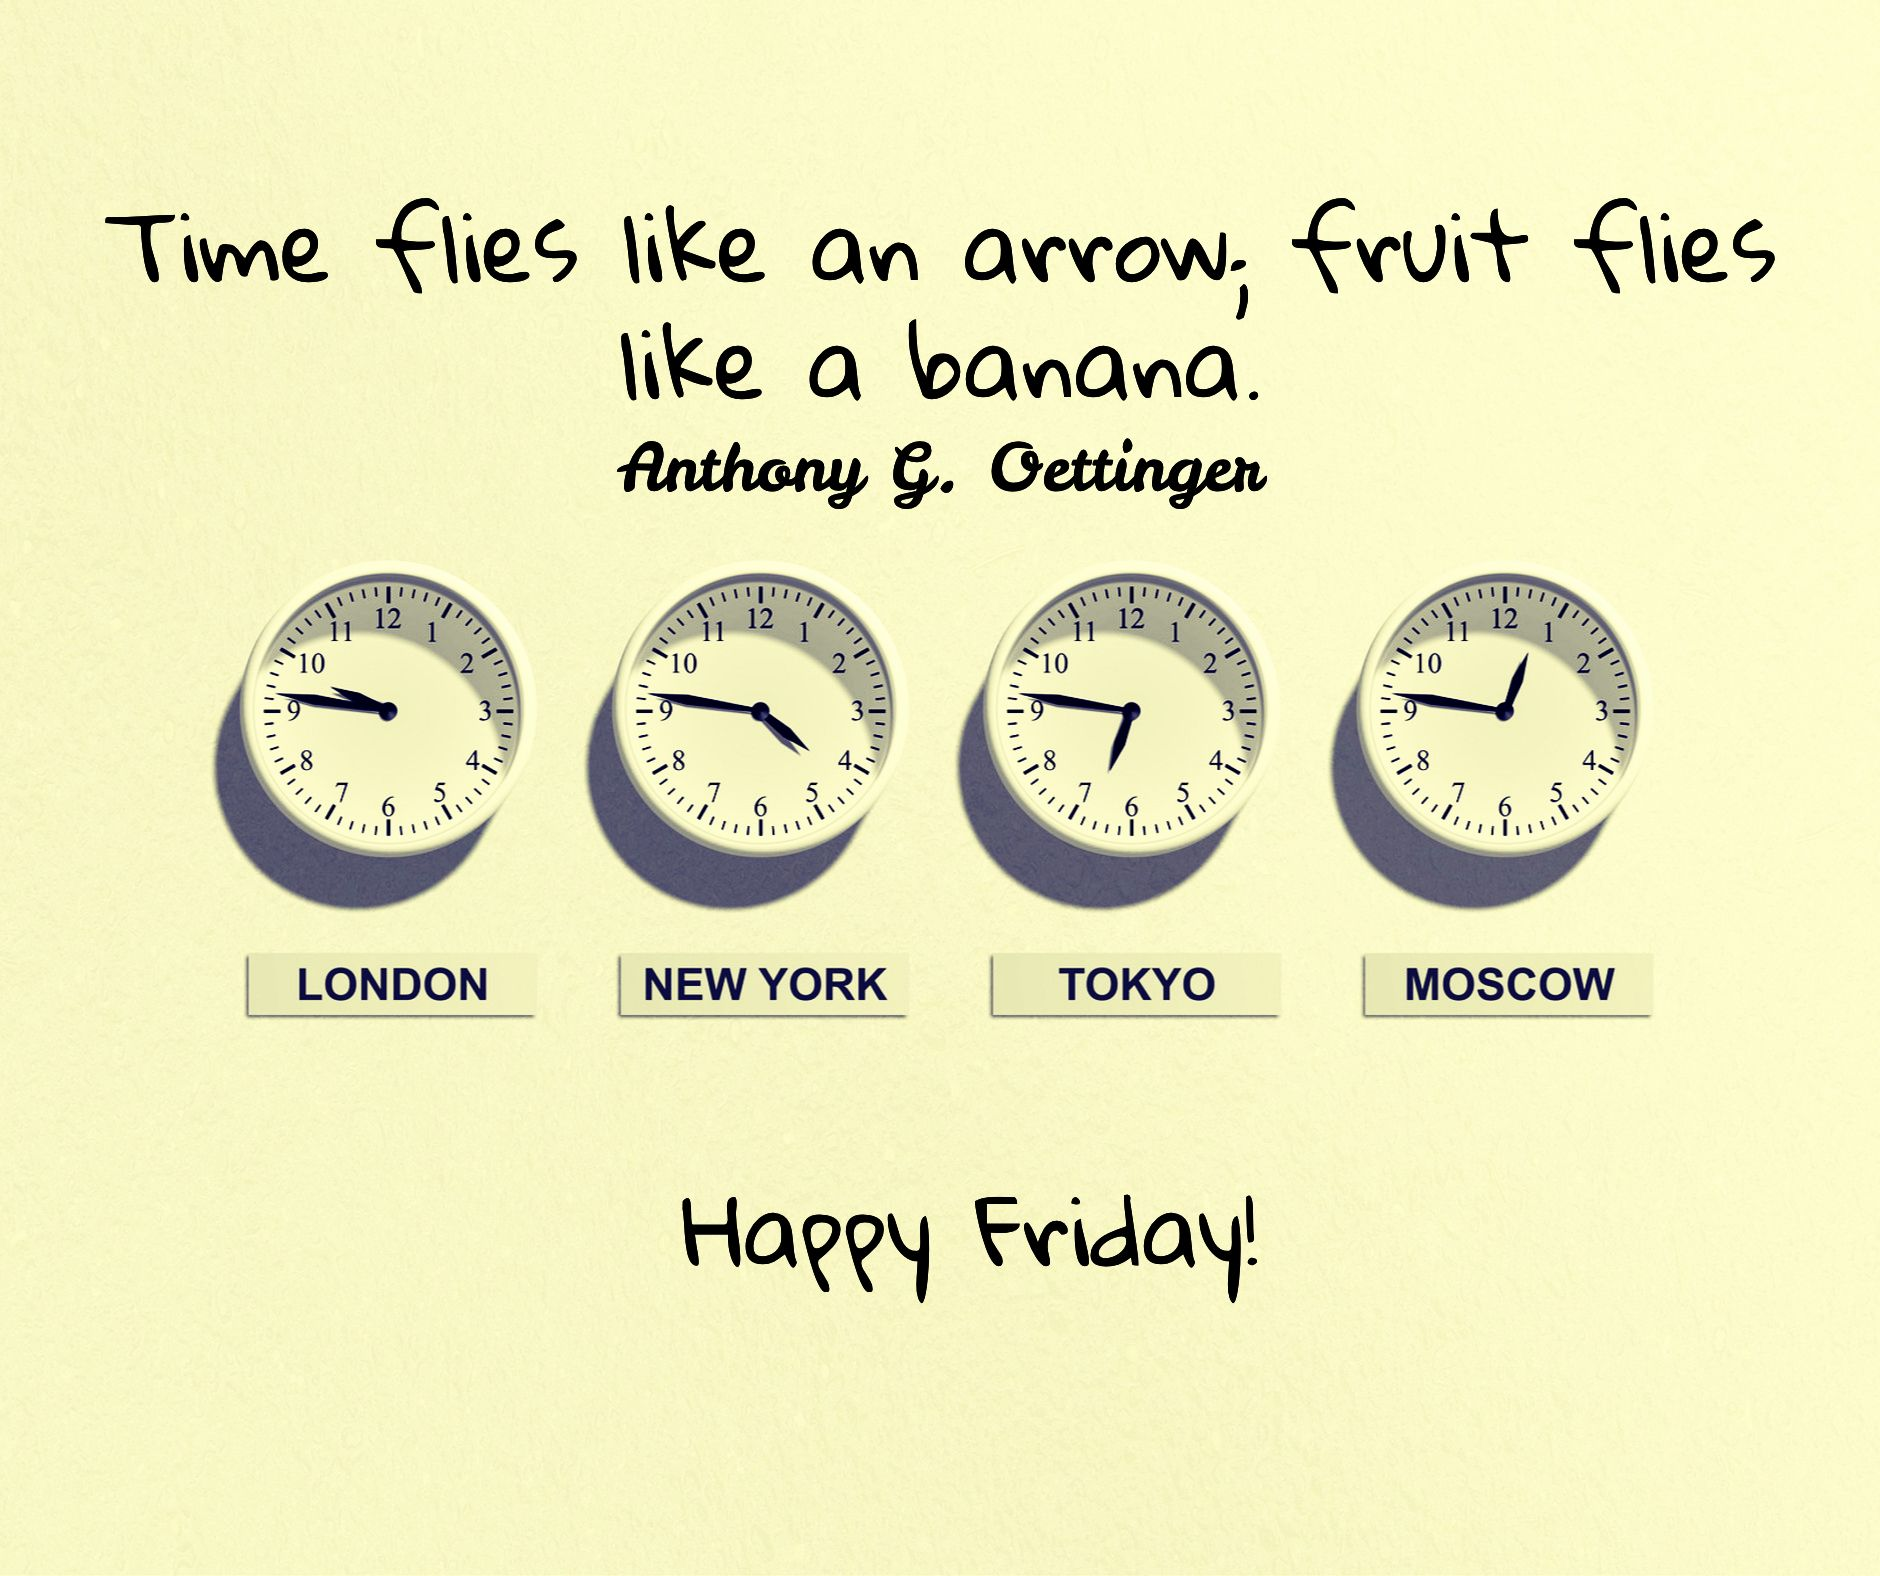 Home With Images Happy Friday Fruit Flies Jokes